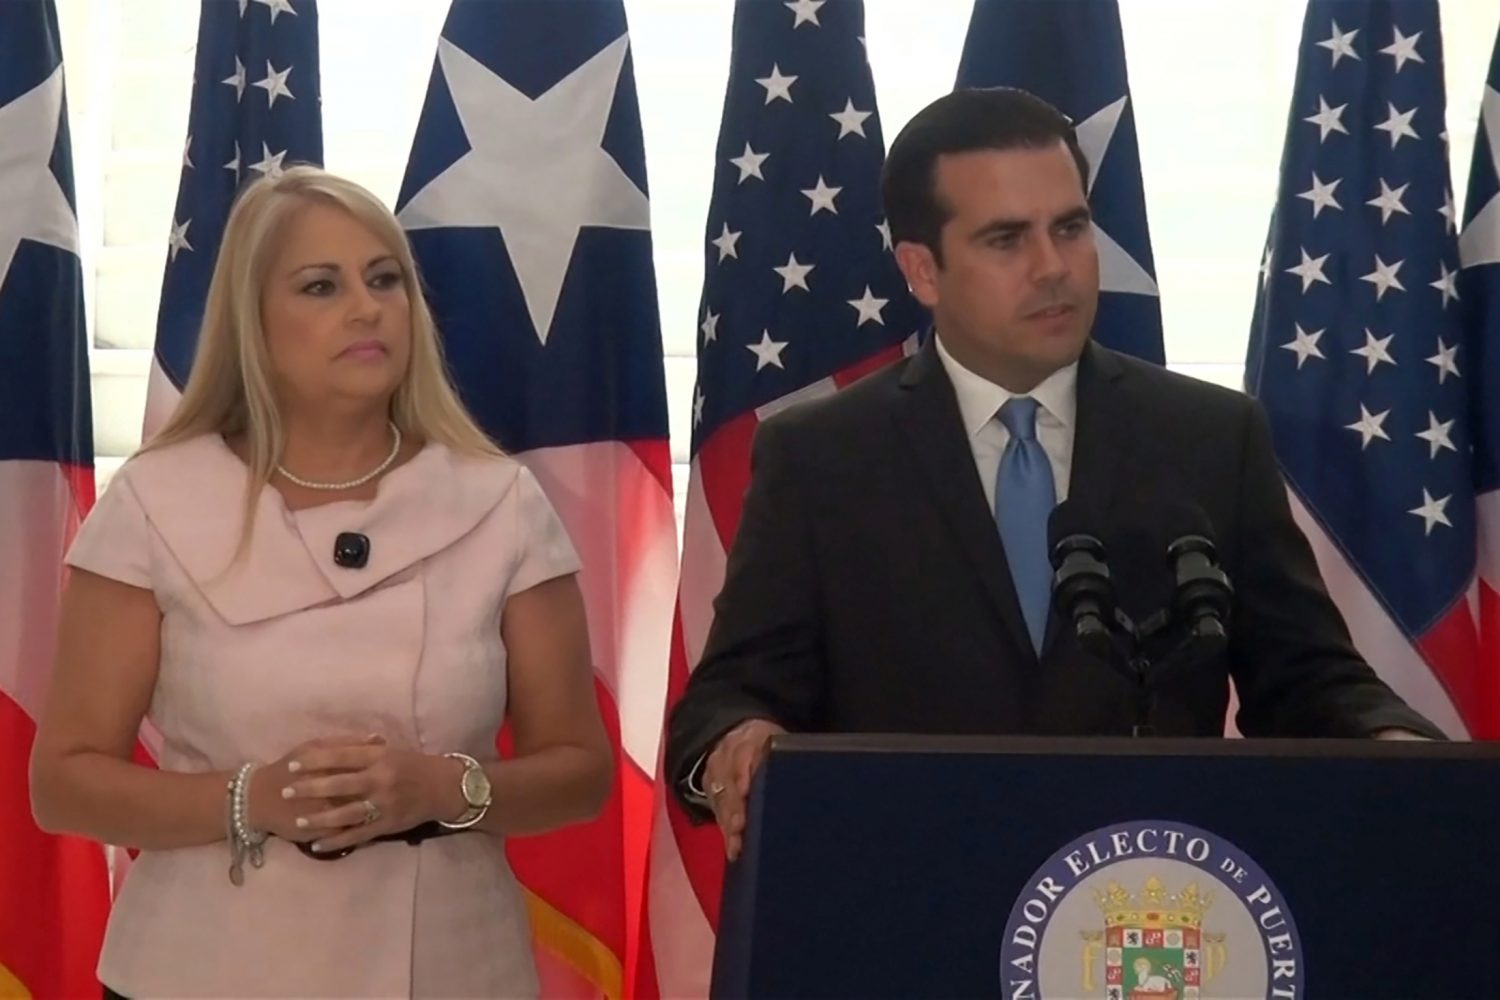 FILE PHOTO: Puerto Rico's Secretary of Justice Wanda Vazquez stands next to Governor Ricardo Rossello during a news conference in an undated still image from file video in San Juan, Puerto Rico. Courtesy WIPR NOTISEIS via REUTERS.